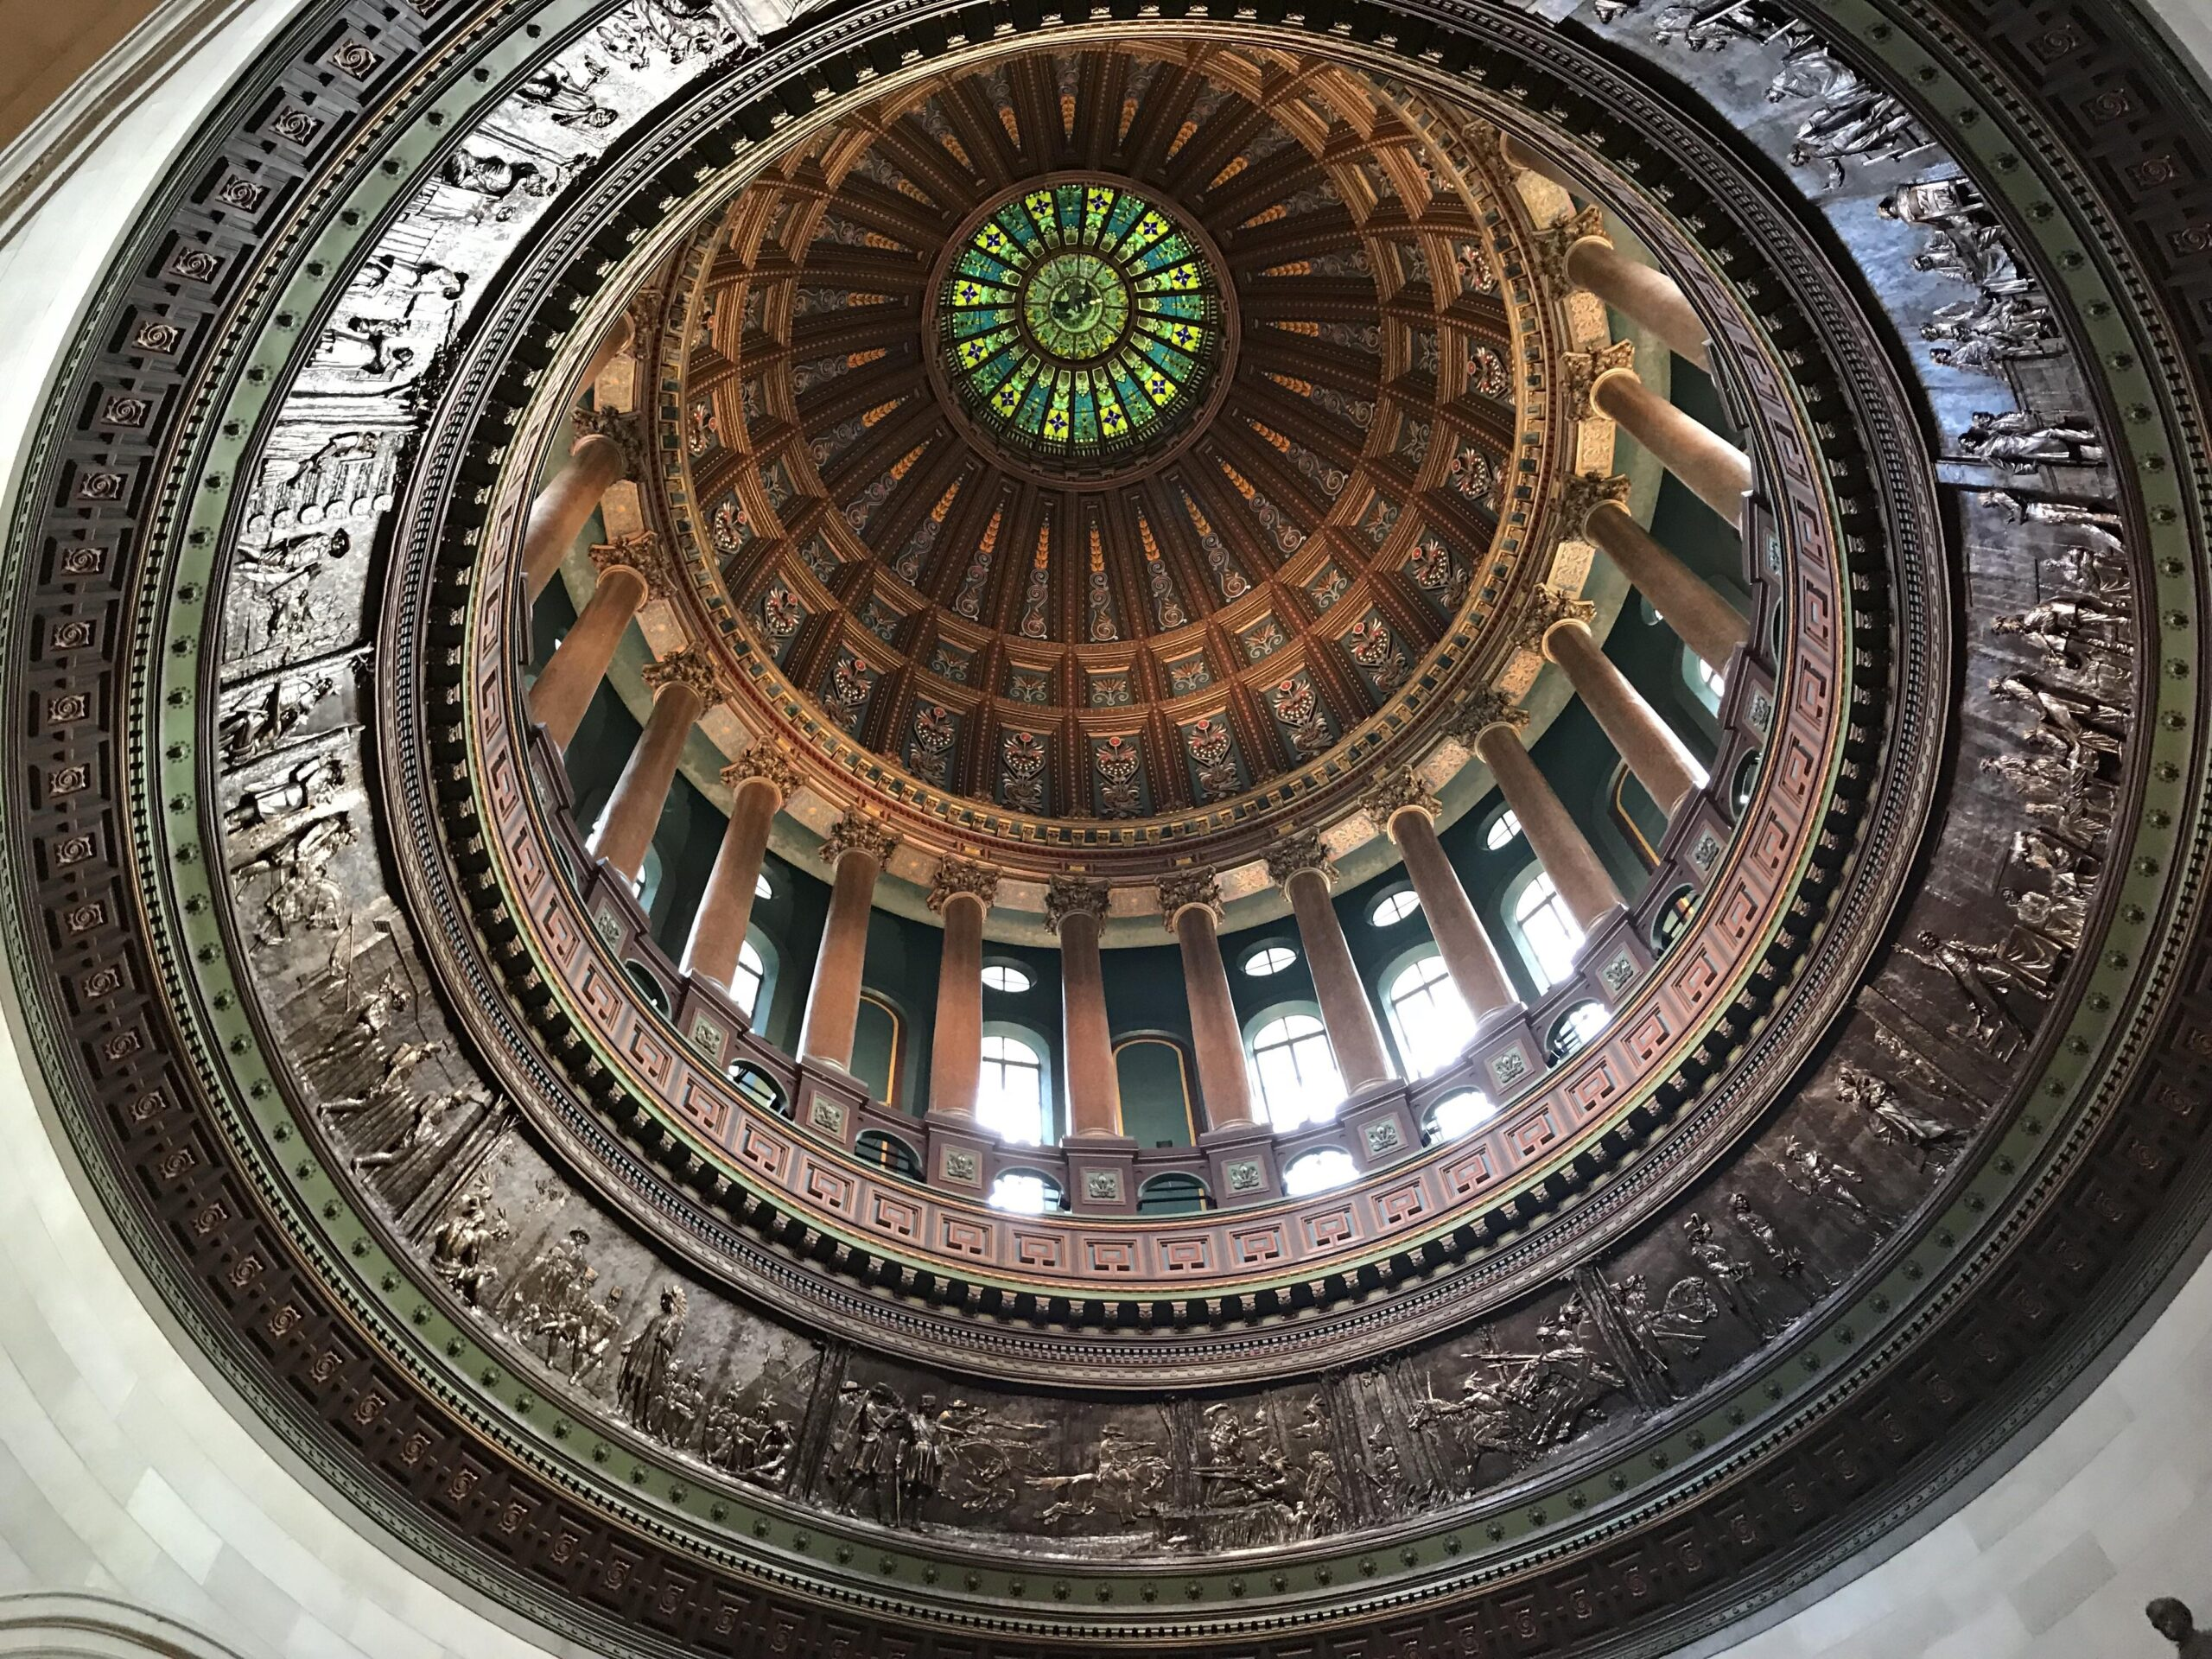 Illinois news in brief for Friday, April 9, 2021